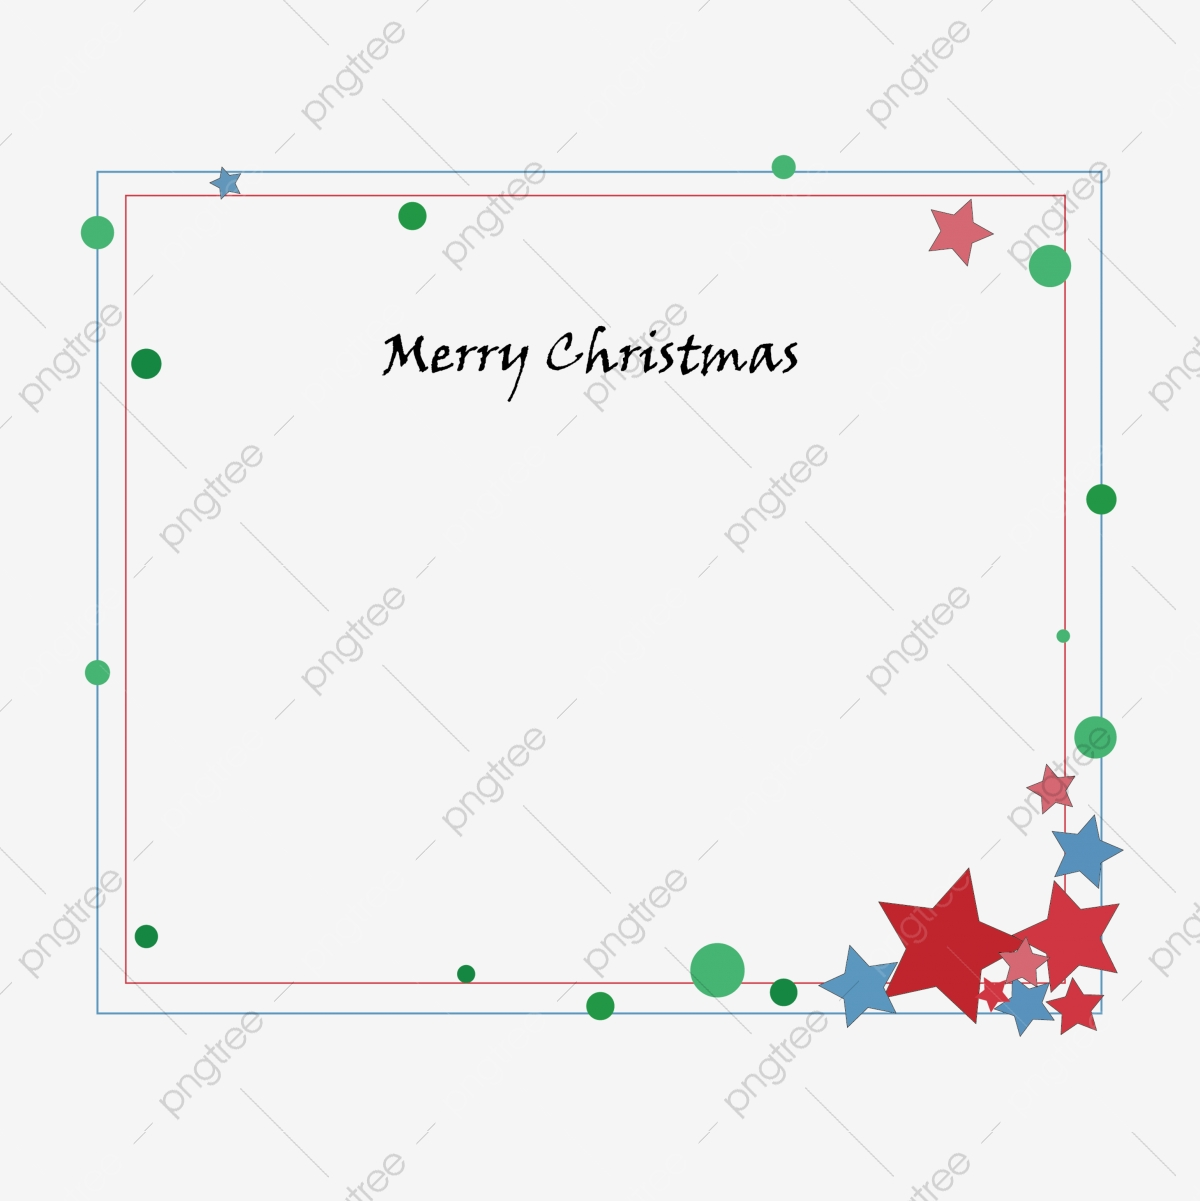 Christmas Lovely Fresh Air Frame Greeting Card Border Christmas Decoration Green Red Png And Vector With Transparent Background For Free Download